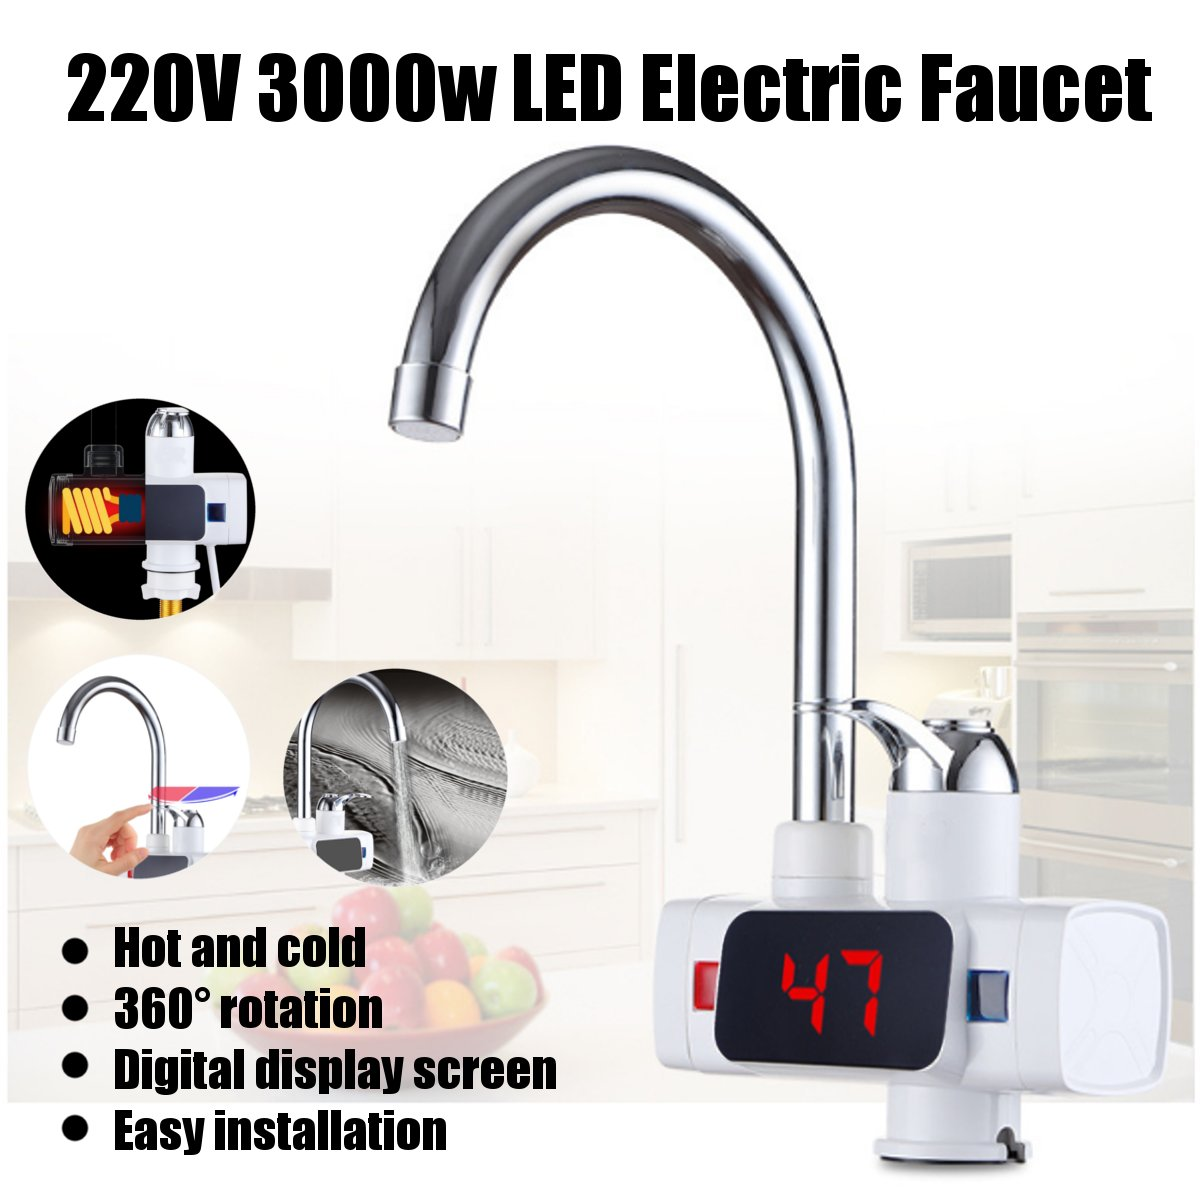 360° Electric Heater LED Faucet Tap Instant Hot Water Bathroom Kitchen 3 Color